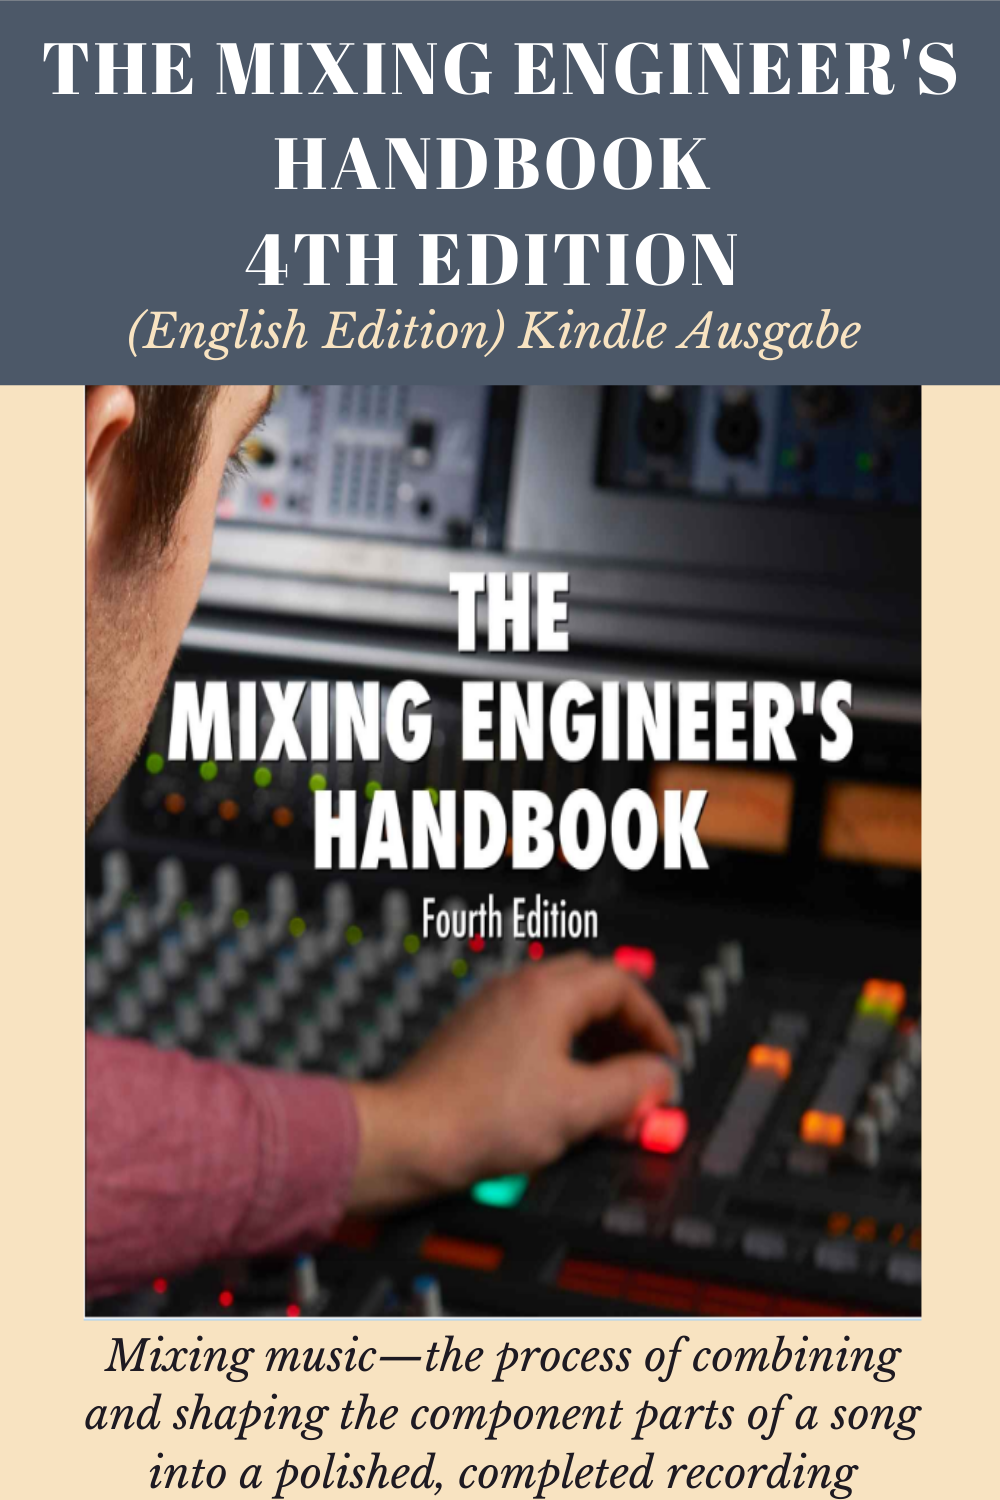 The Mixing Engineer S Handbook 4th Edition English Edition Kindle Ausgabe Musik Mischen Kindle Bobby